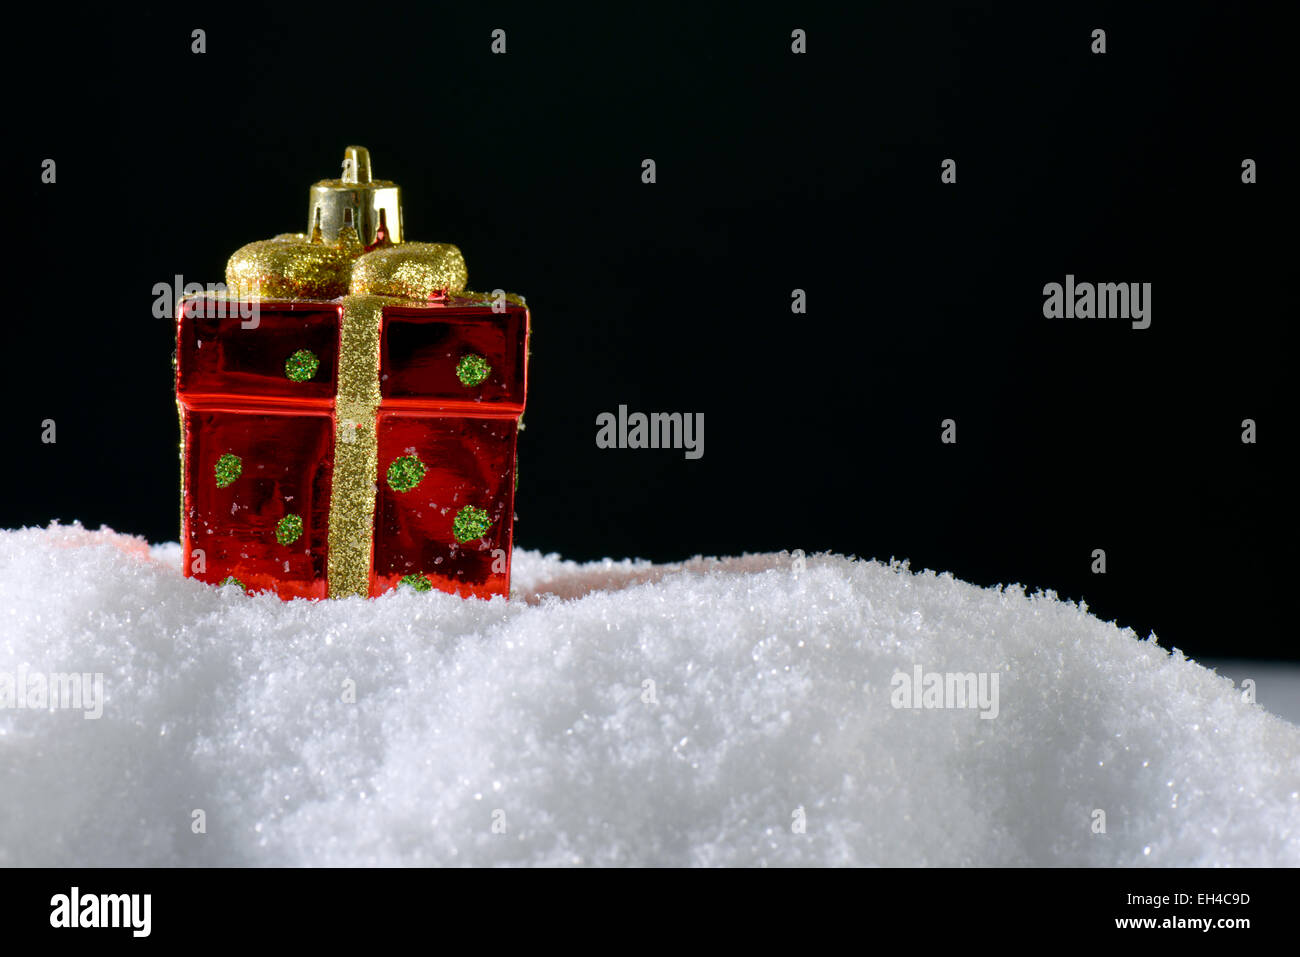 Christmas decoration Present on snow - Stock Image